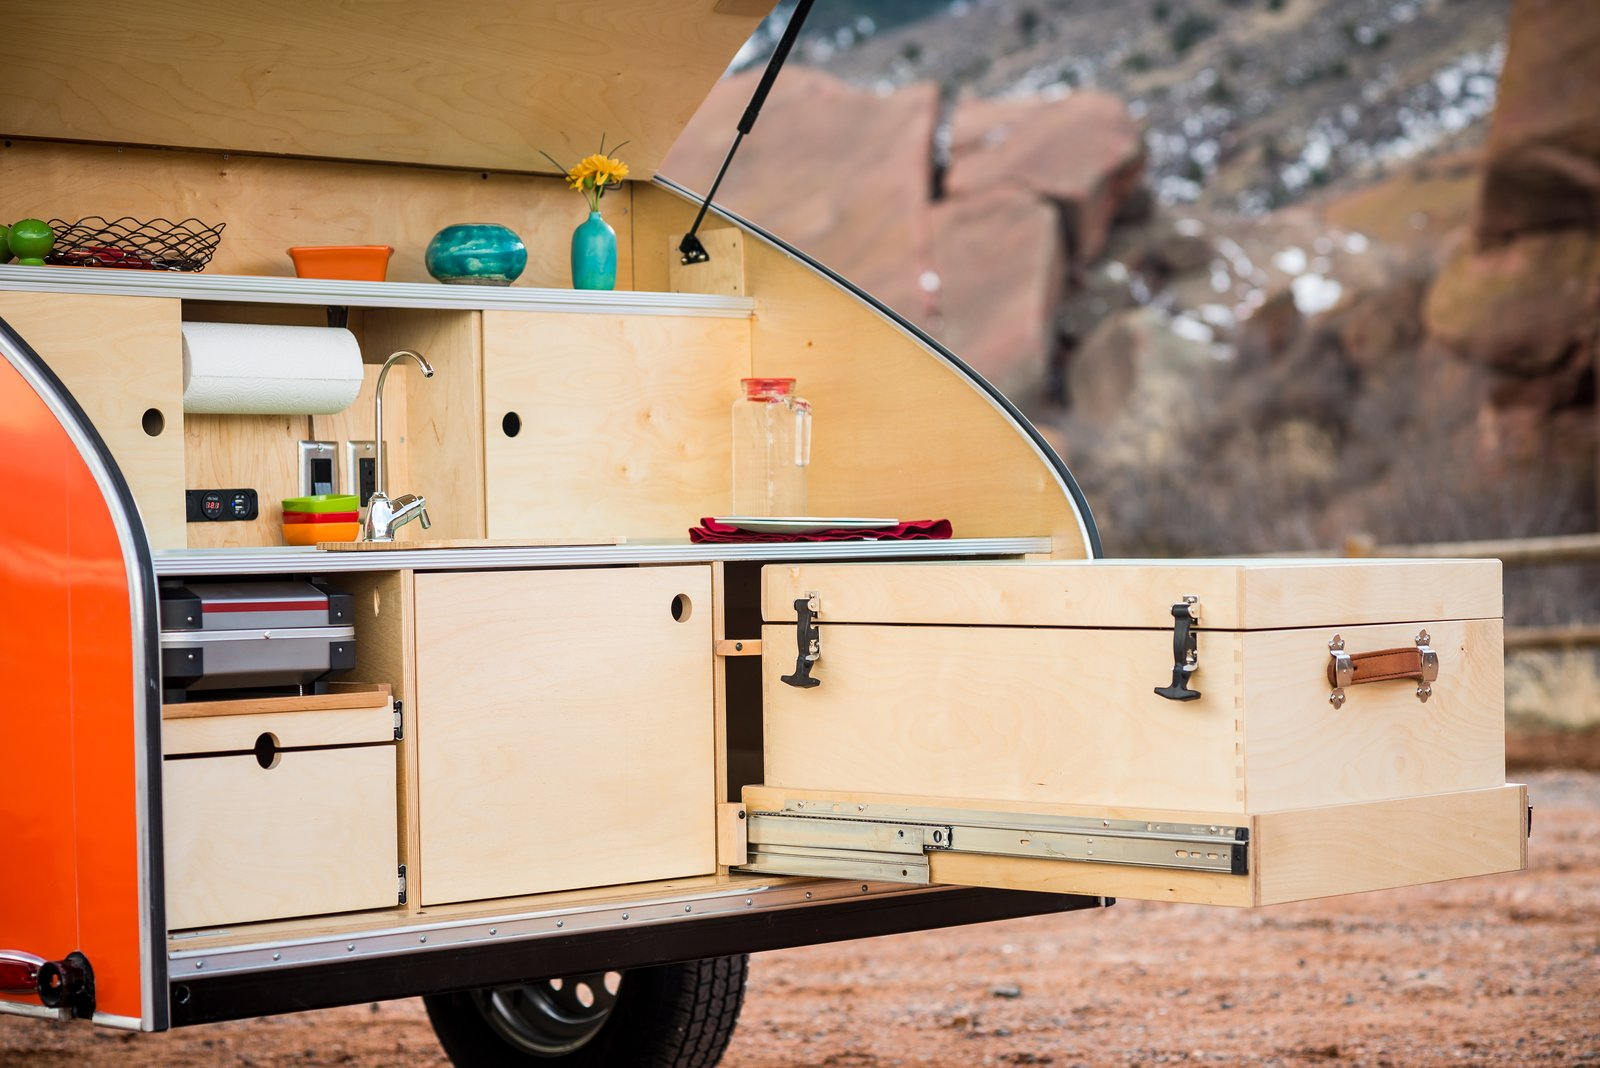 Kitchen, Drop In, Wood, Laminate, Wood, and Wood The birch cooler has details such as genuine leather handles and dovetail joinery.  Best Kitchen Wood Wood Drop In Photos from Timberleaf Trailers